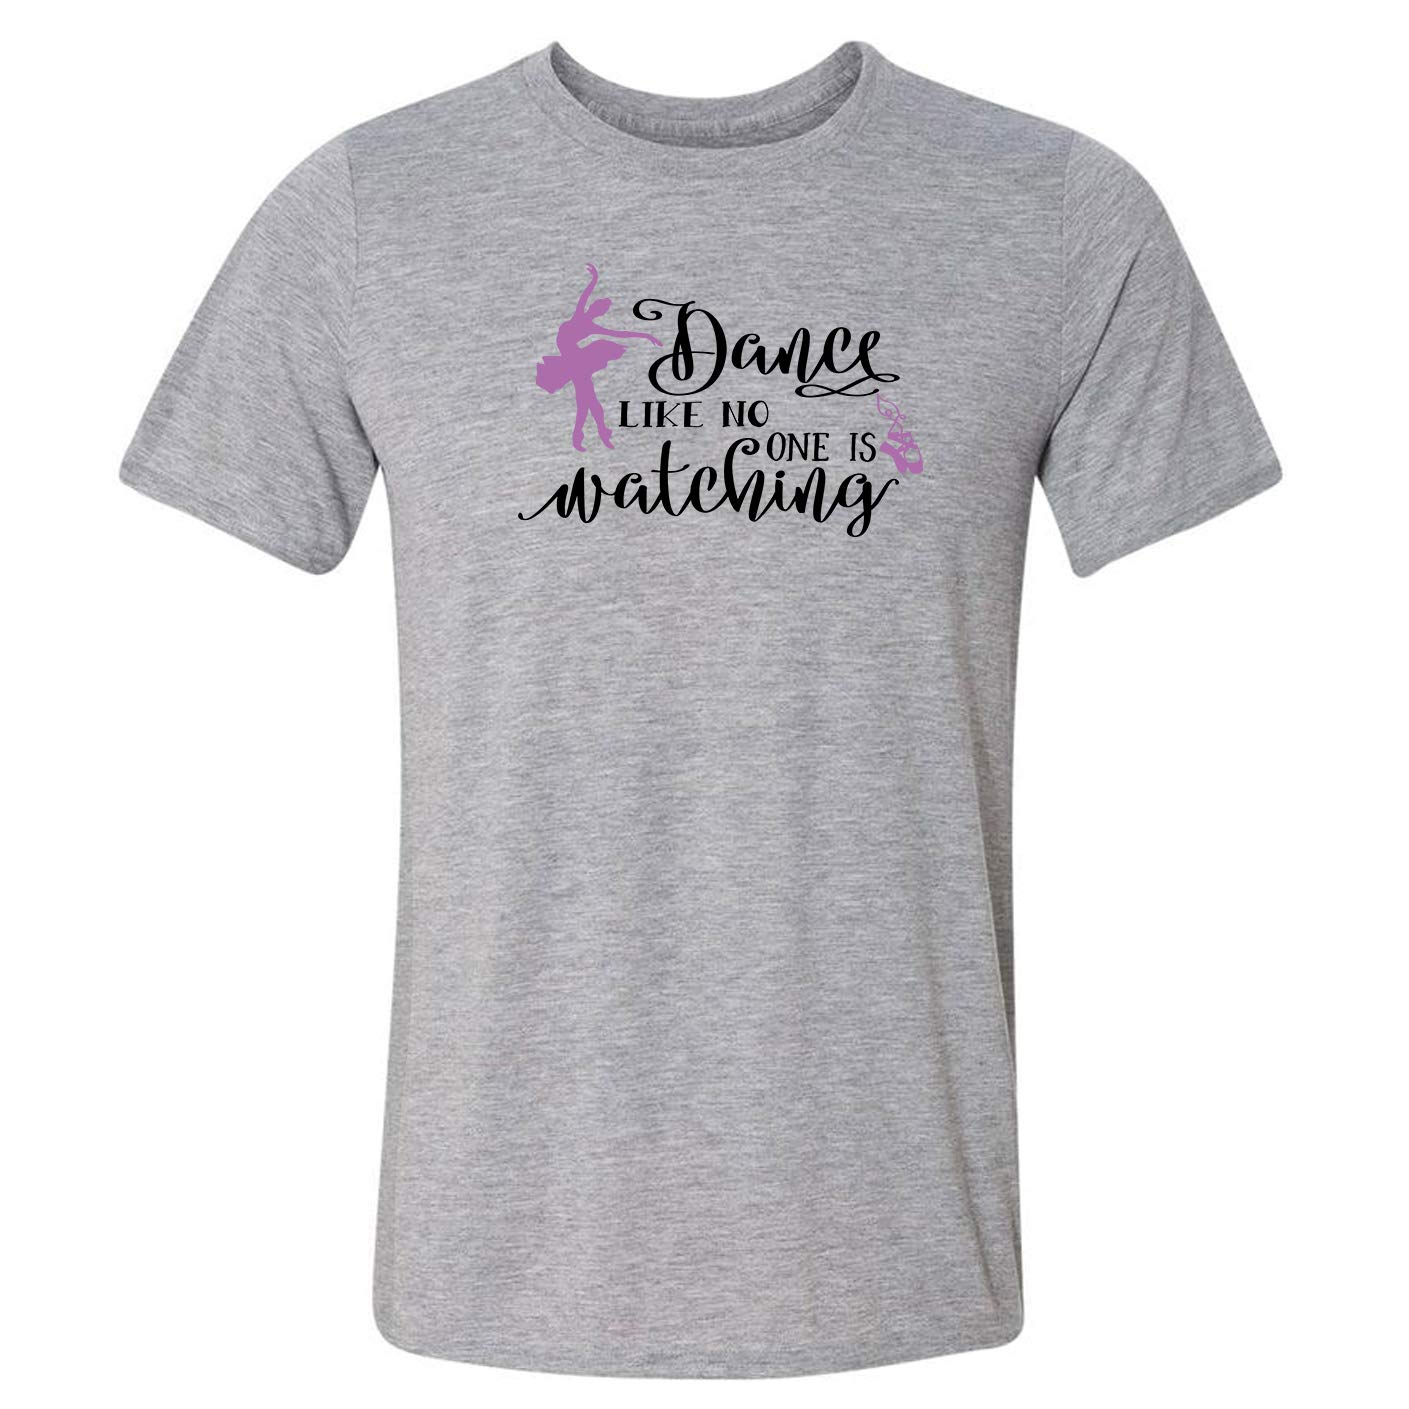 Long-awaited Dance Like No One Watching T-Shirt Price reduction Is